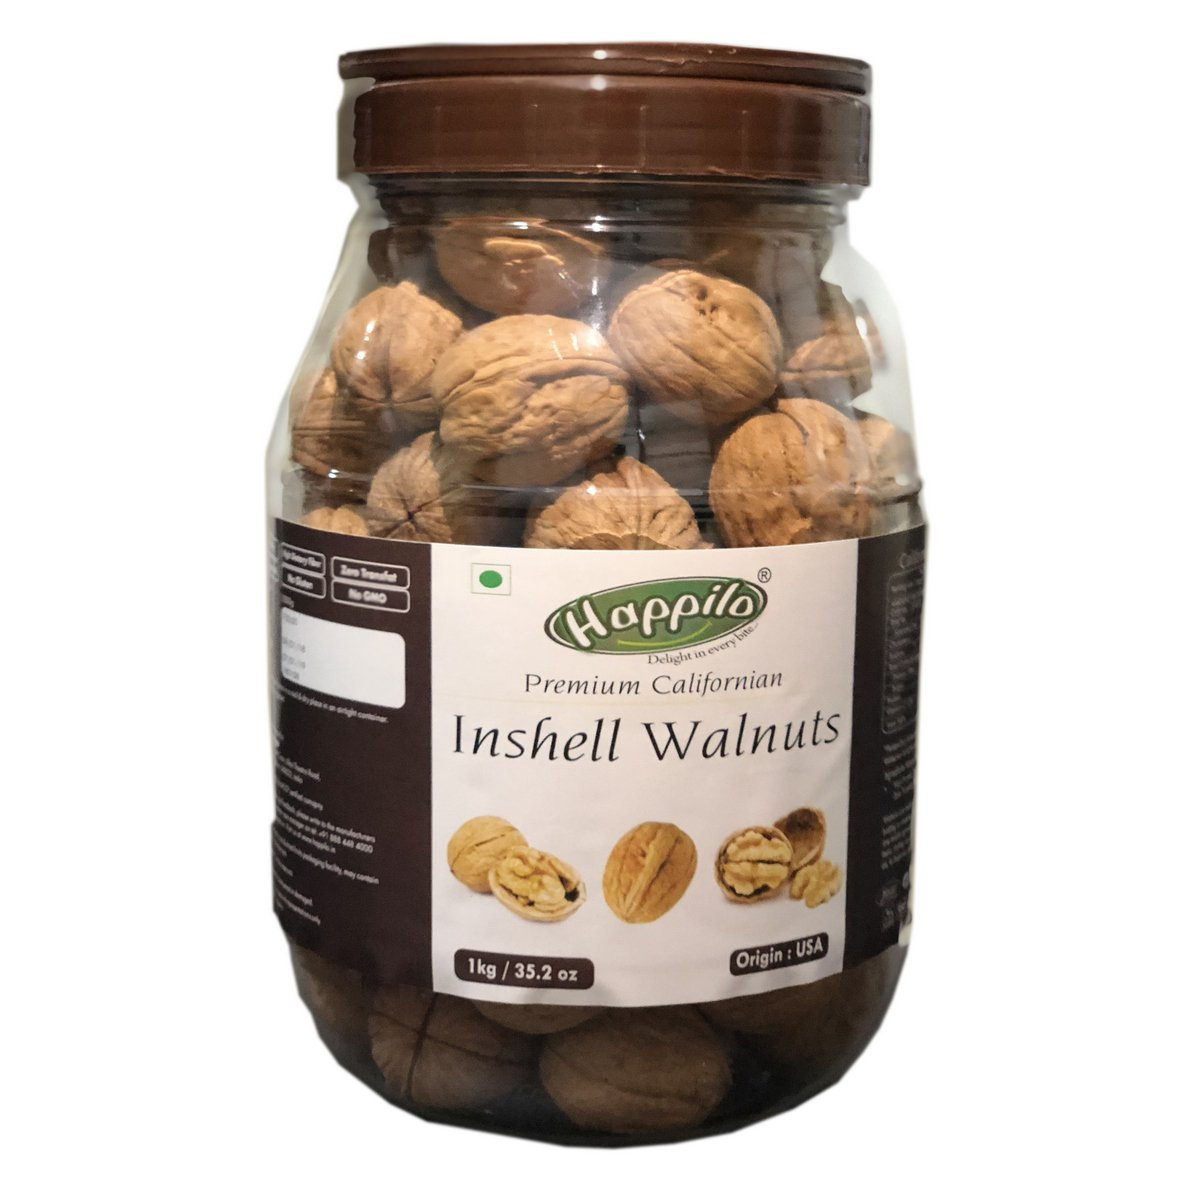 Happilo premium 1000g Walnut + Free Rs.400 Book my show movie Voucher Just @Rs.600 only Buy fast